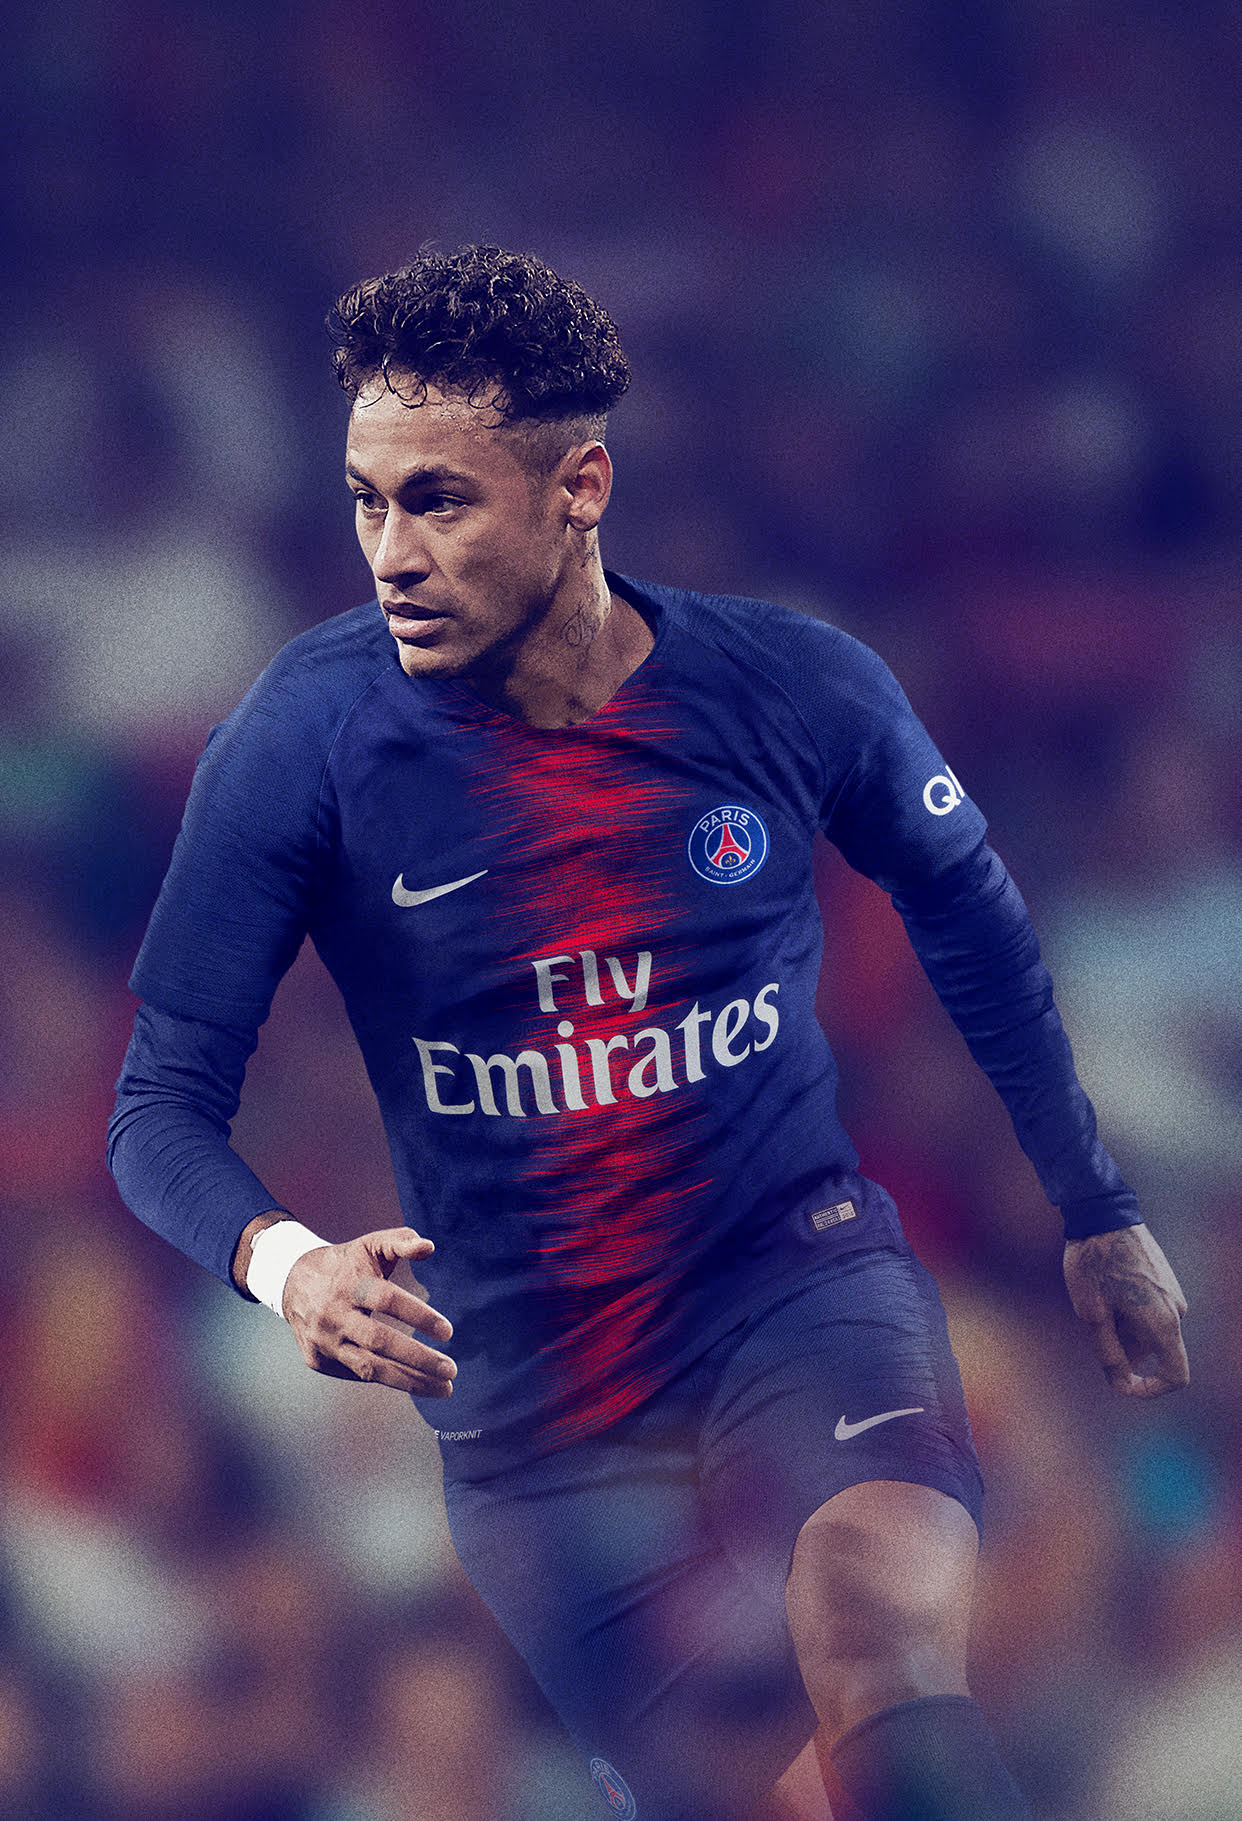 Coiffure Neymar 2018 Neymar Jr On Twitter Quotproud To Wear The New Jersey And To